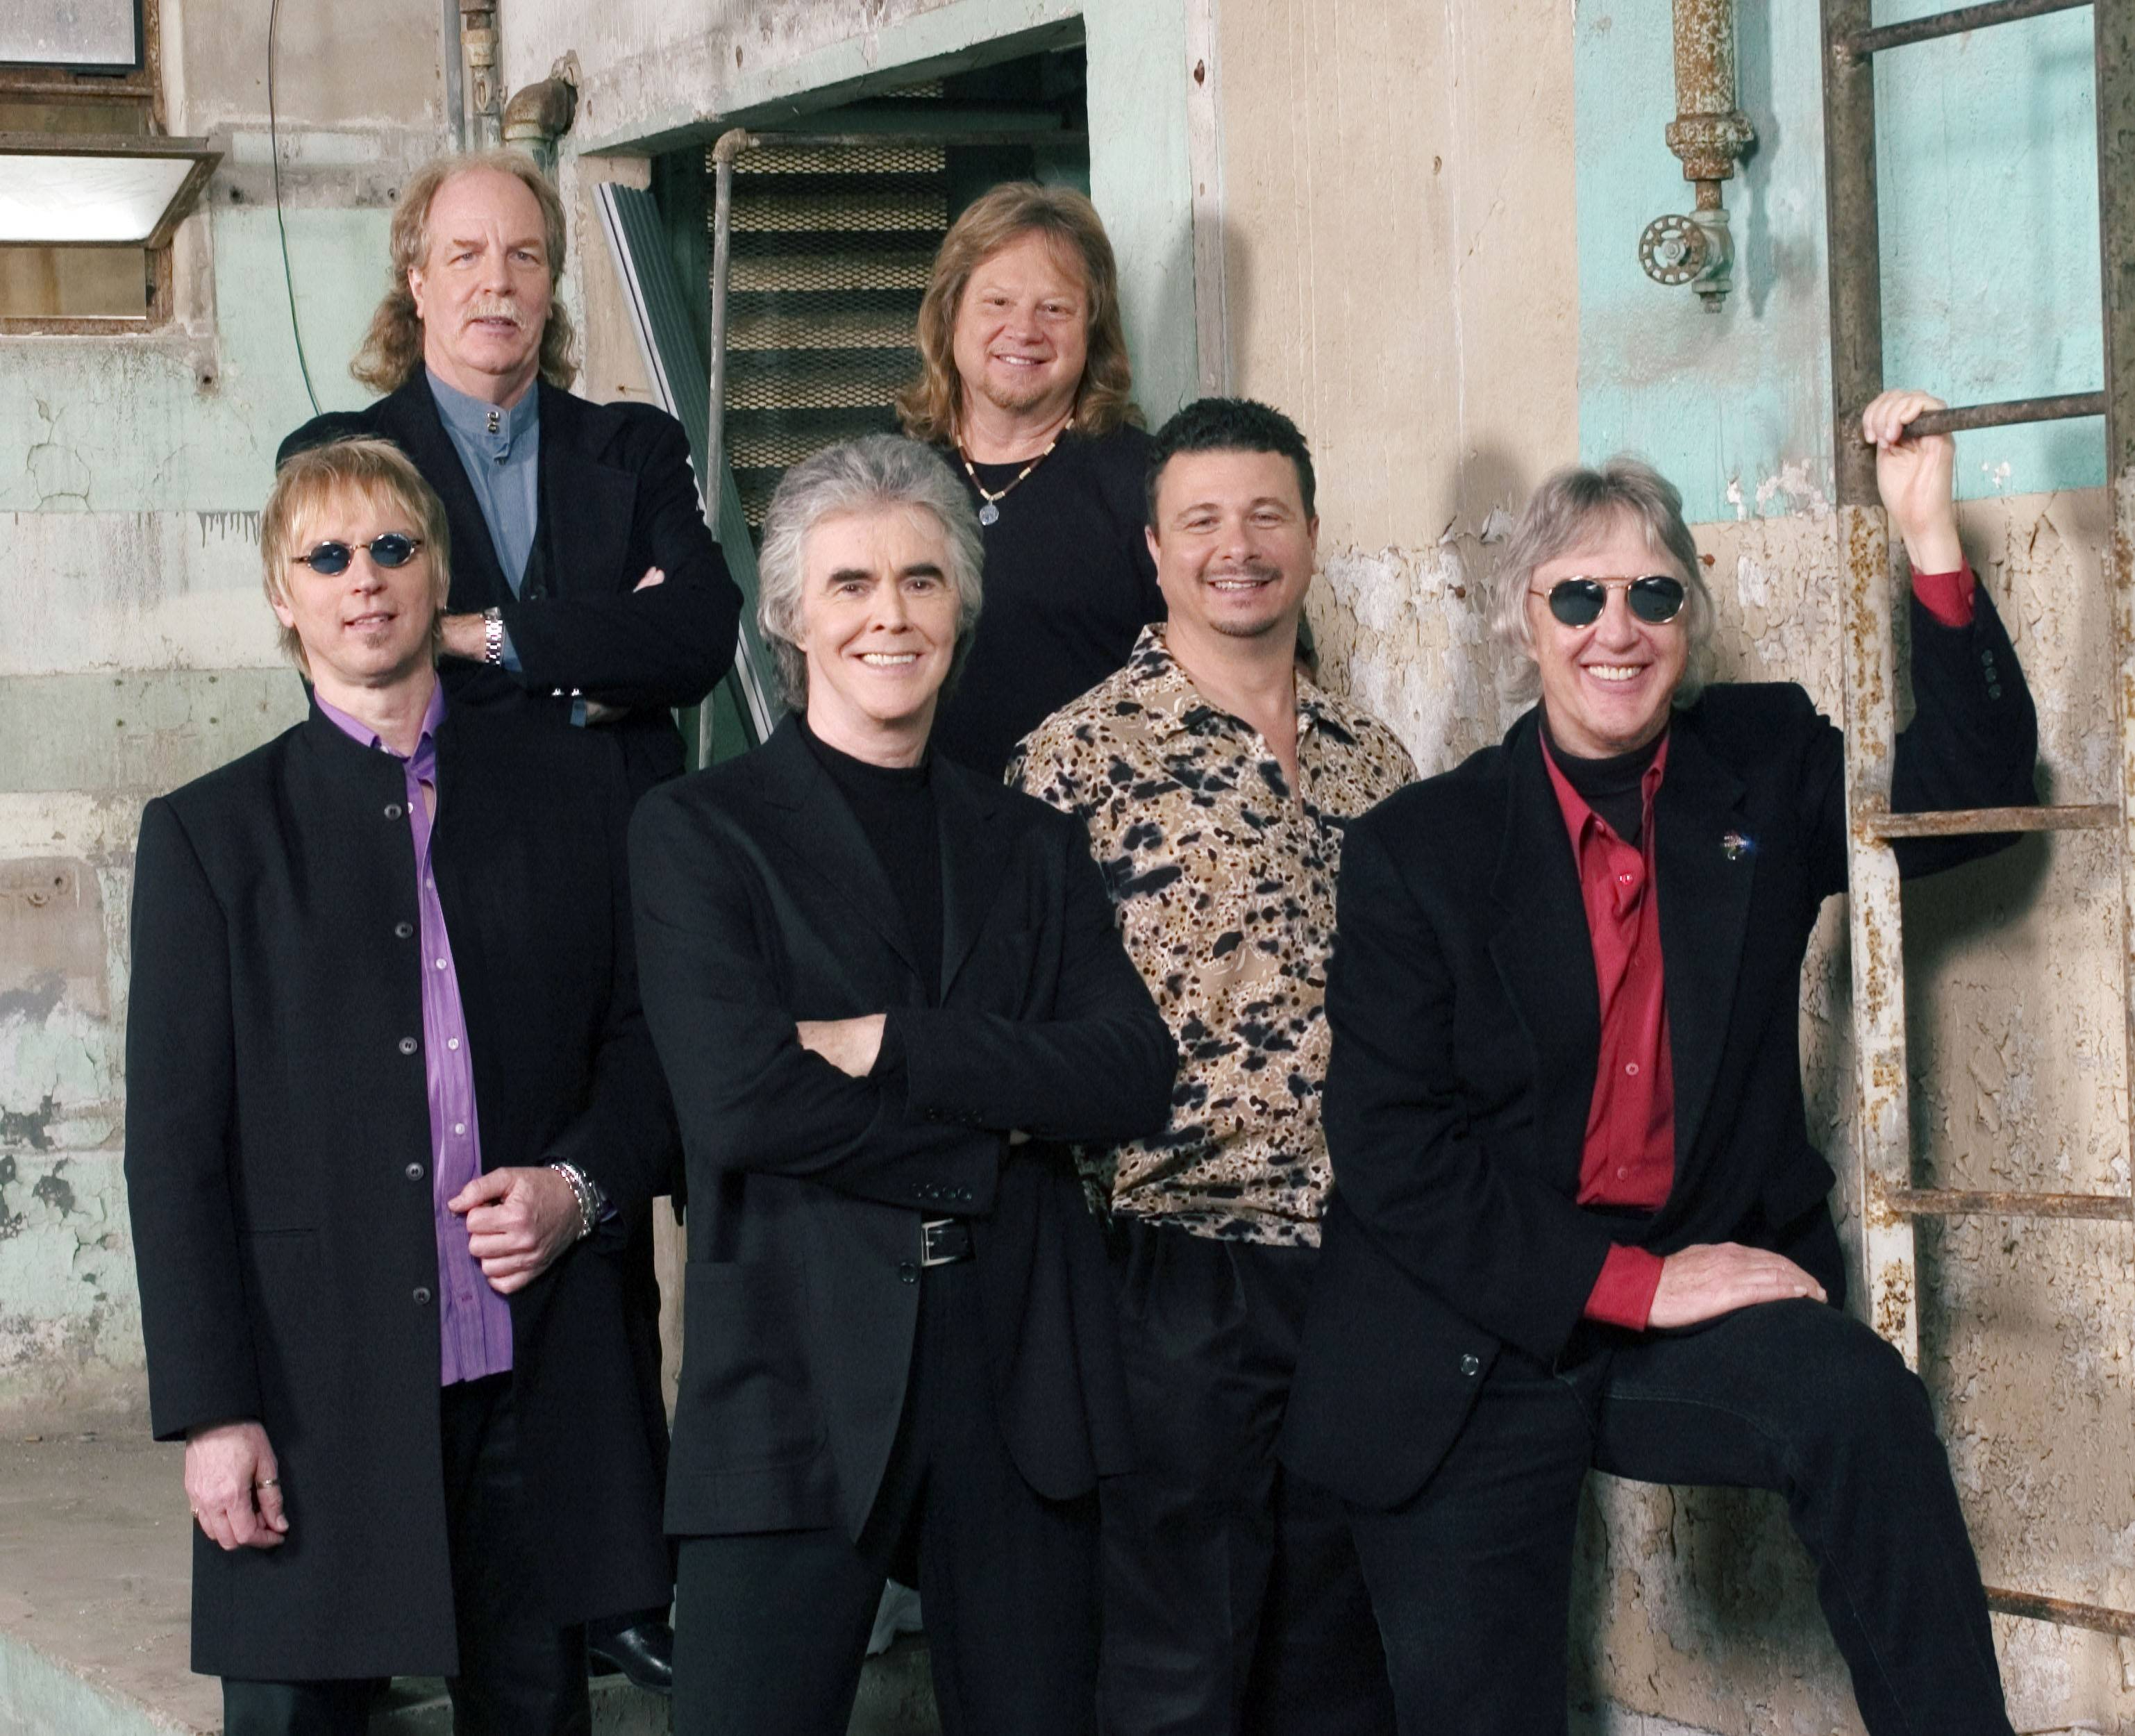 Three Dog Night will play old favorites for fans Friday, March 28, at the Arcada Theatre in St. Charles.